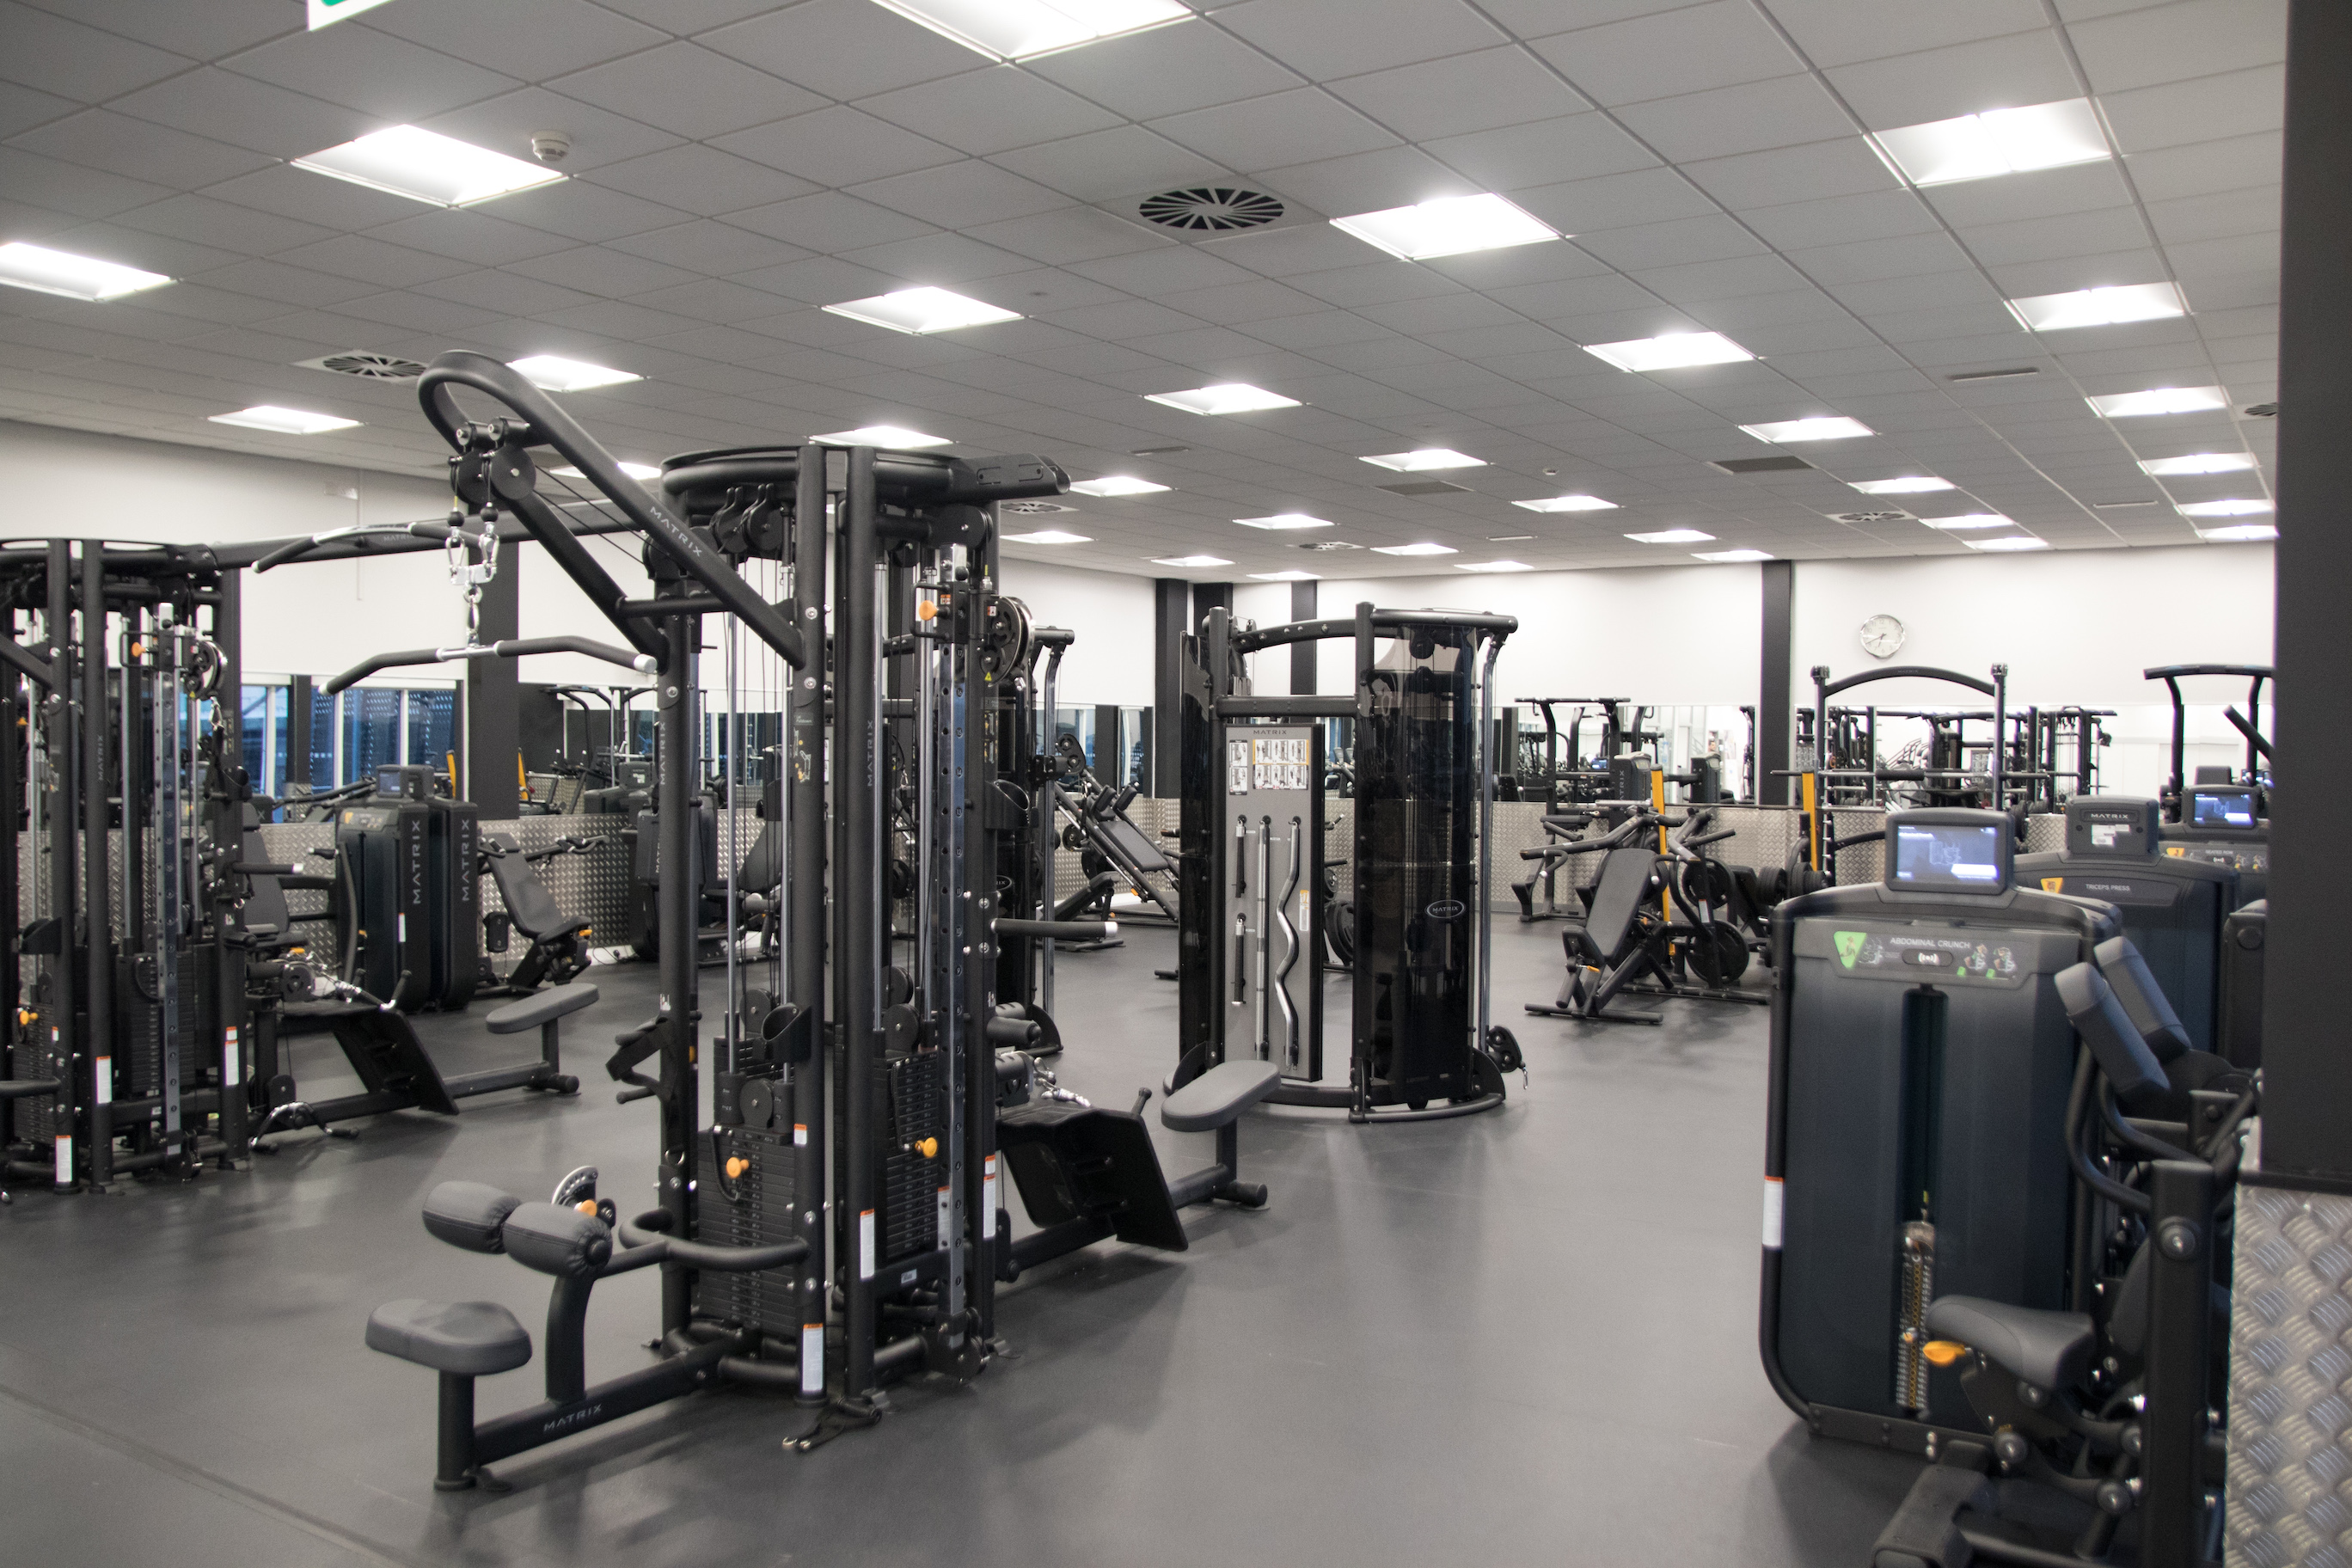 NORTHUMBRIA UNIVERSITY AND MATRIX FITNESS PARTNER TO TRANSFORM FITNESS EXPERIENCE